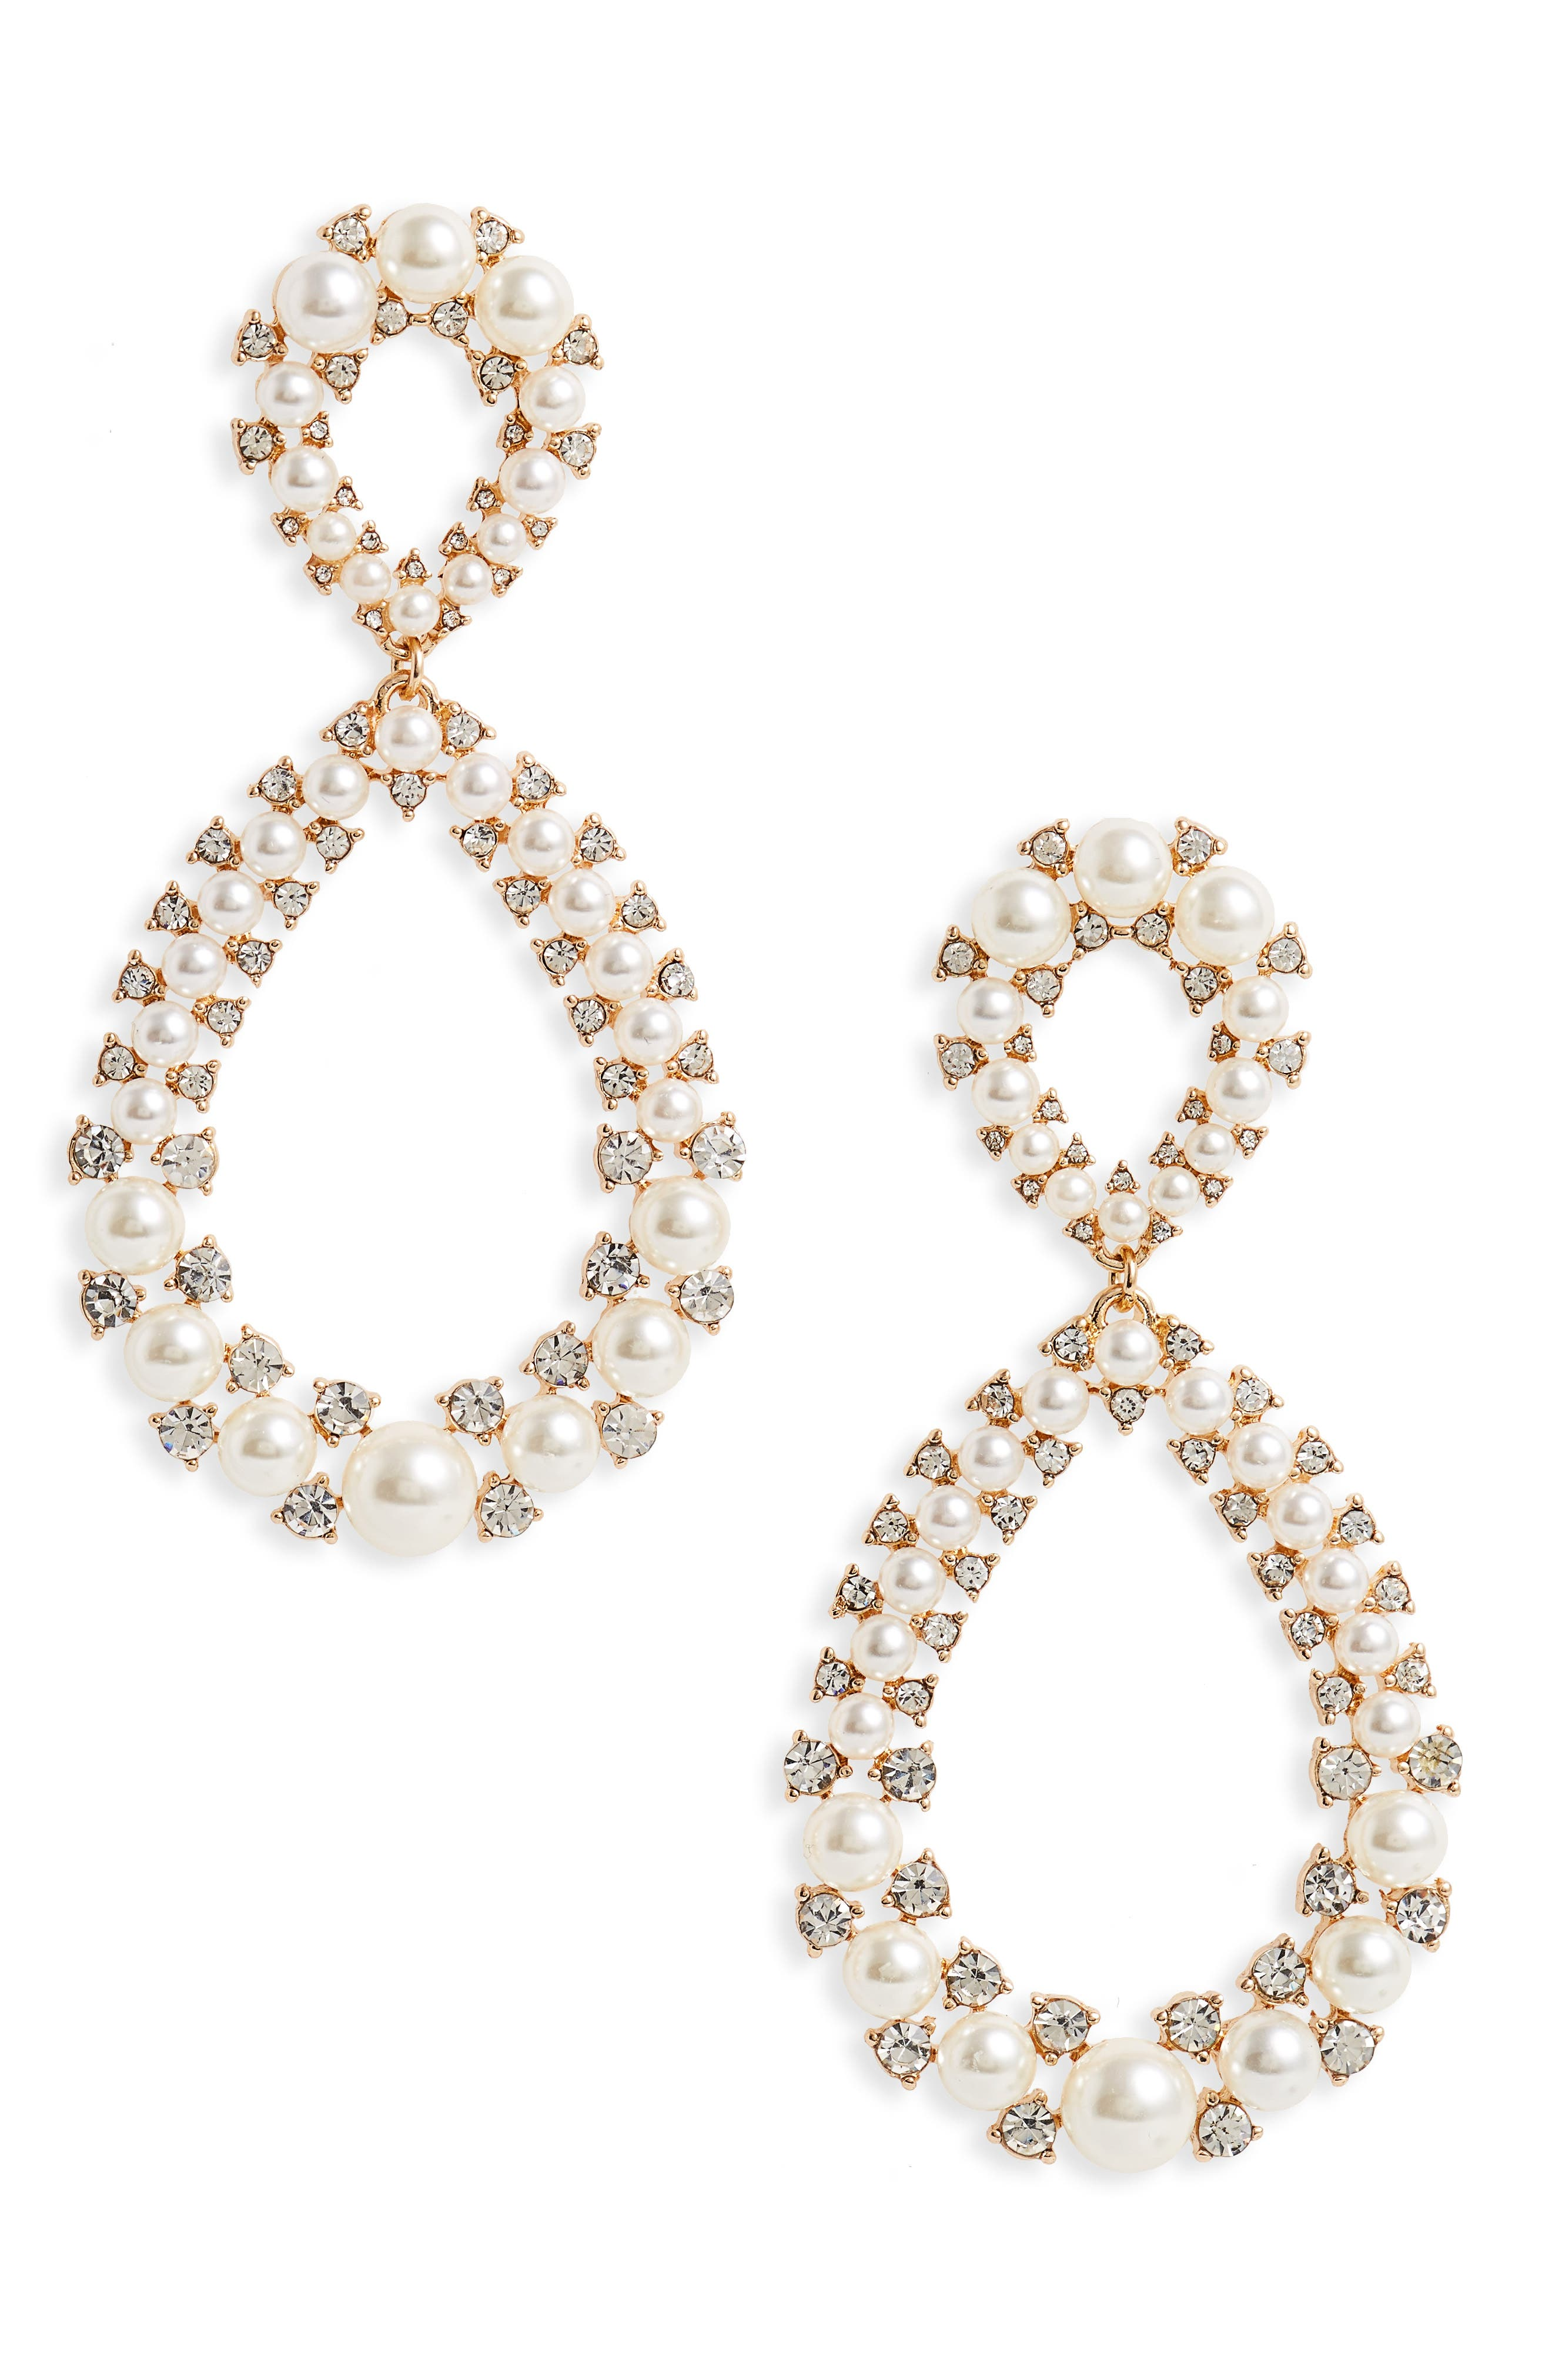 Imitation Pearl & Crystal Statement Earrings,                             Main thumbnail 1, color,                             100